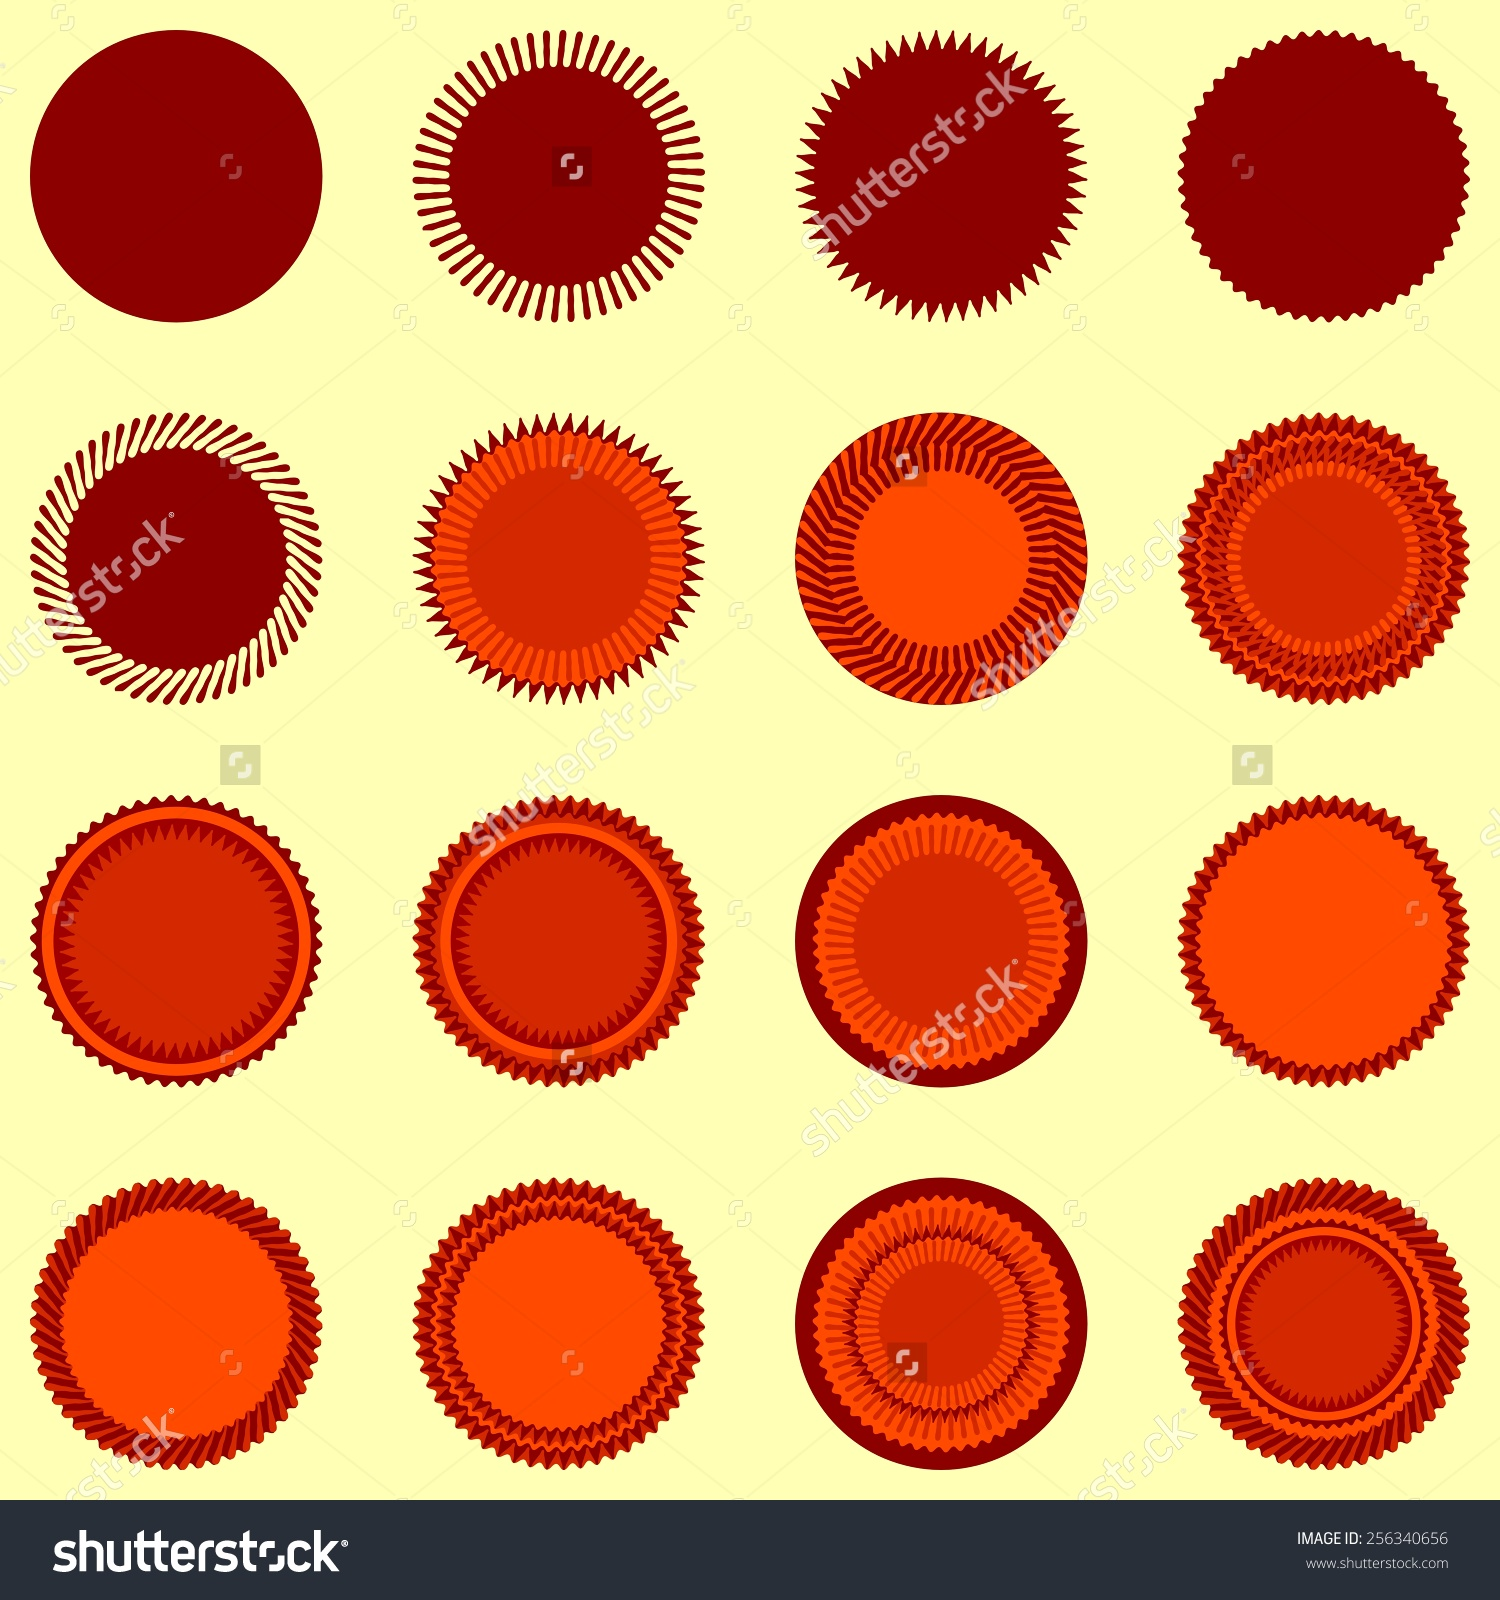 Round Seal Shapes Orangebrown Colors Isolated Stock Vector.